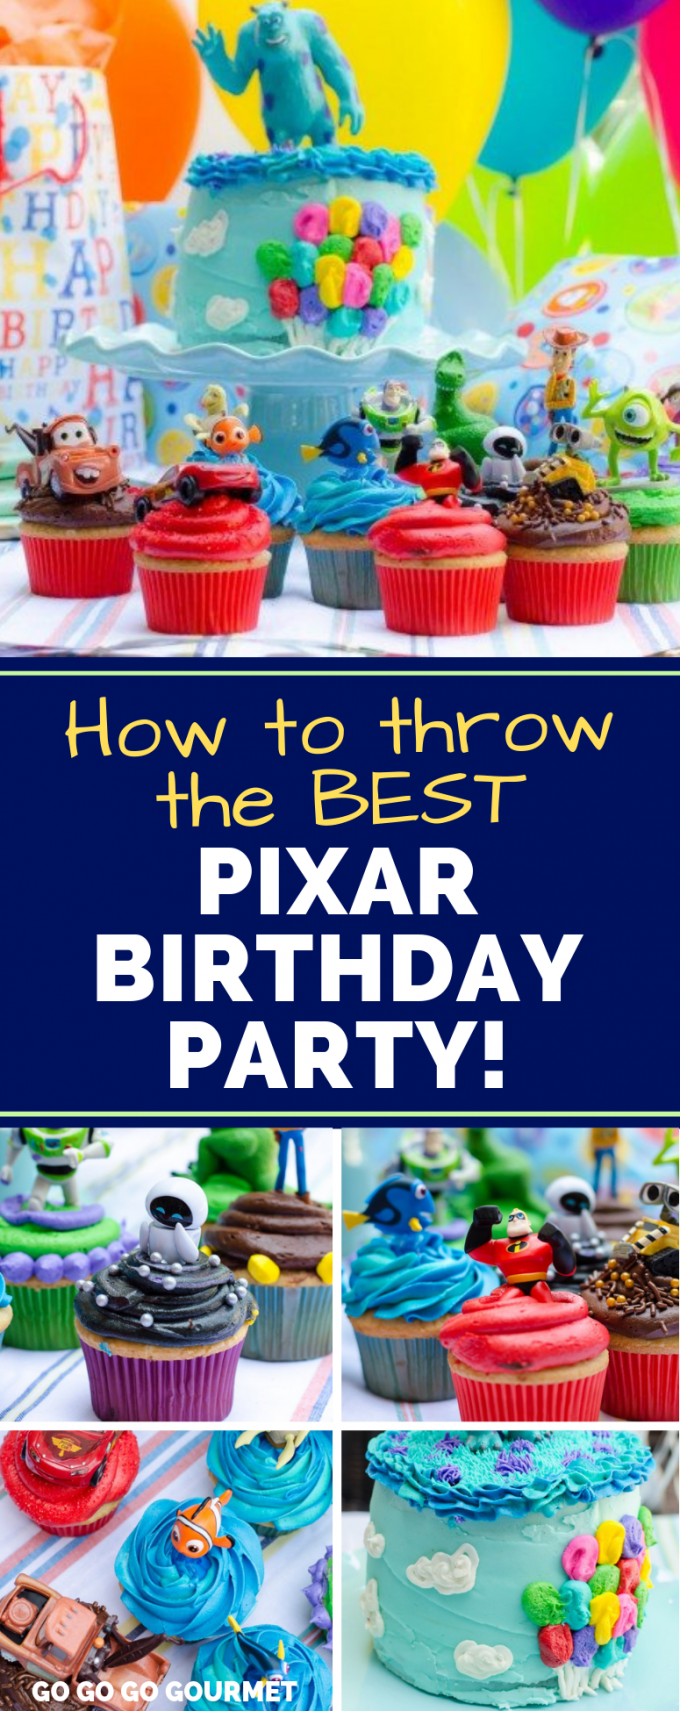 What do you do when a little boy is turning 3 and LOVES Disney and Pixar movies?? Why you throw him a Pixar party, complete with a Pixar cake and 13 individually themed Pixar cupcakes! #gogogogourmet #pixar #disney #pixarbirthday #pixarbirthdaycake via @gogogogourmet